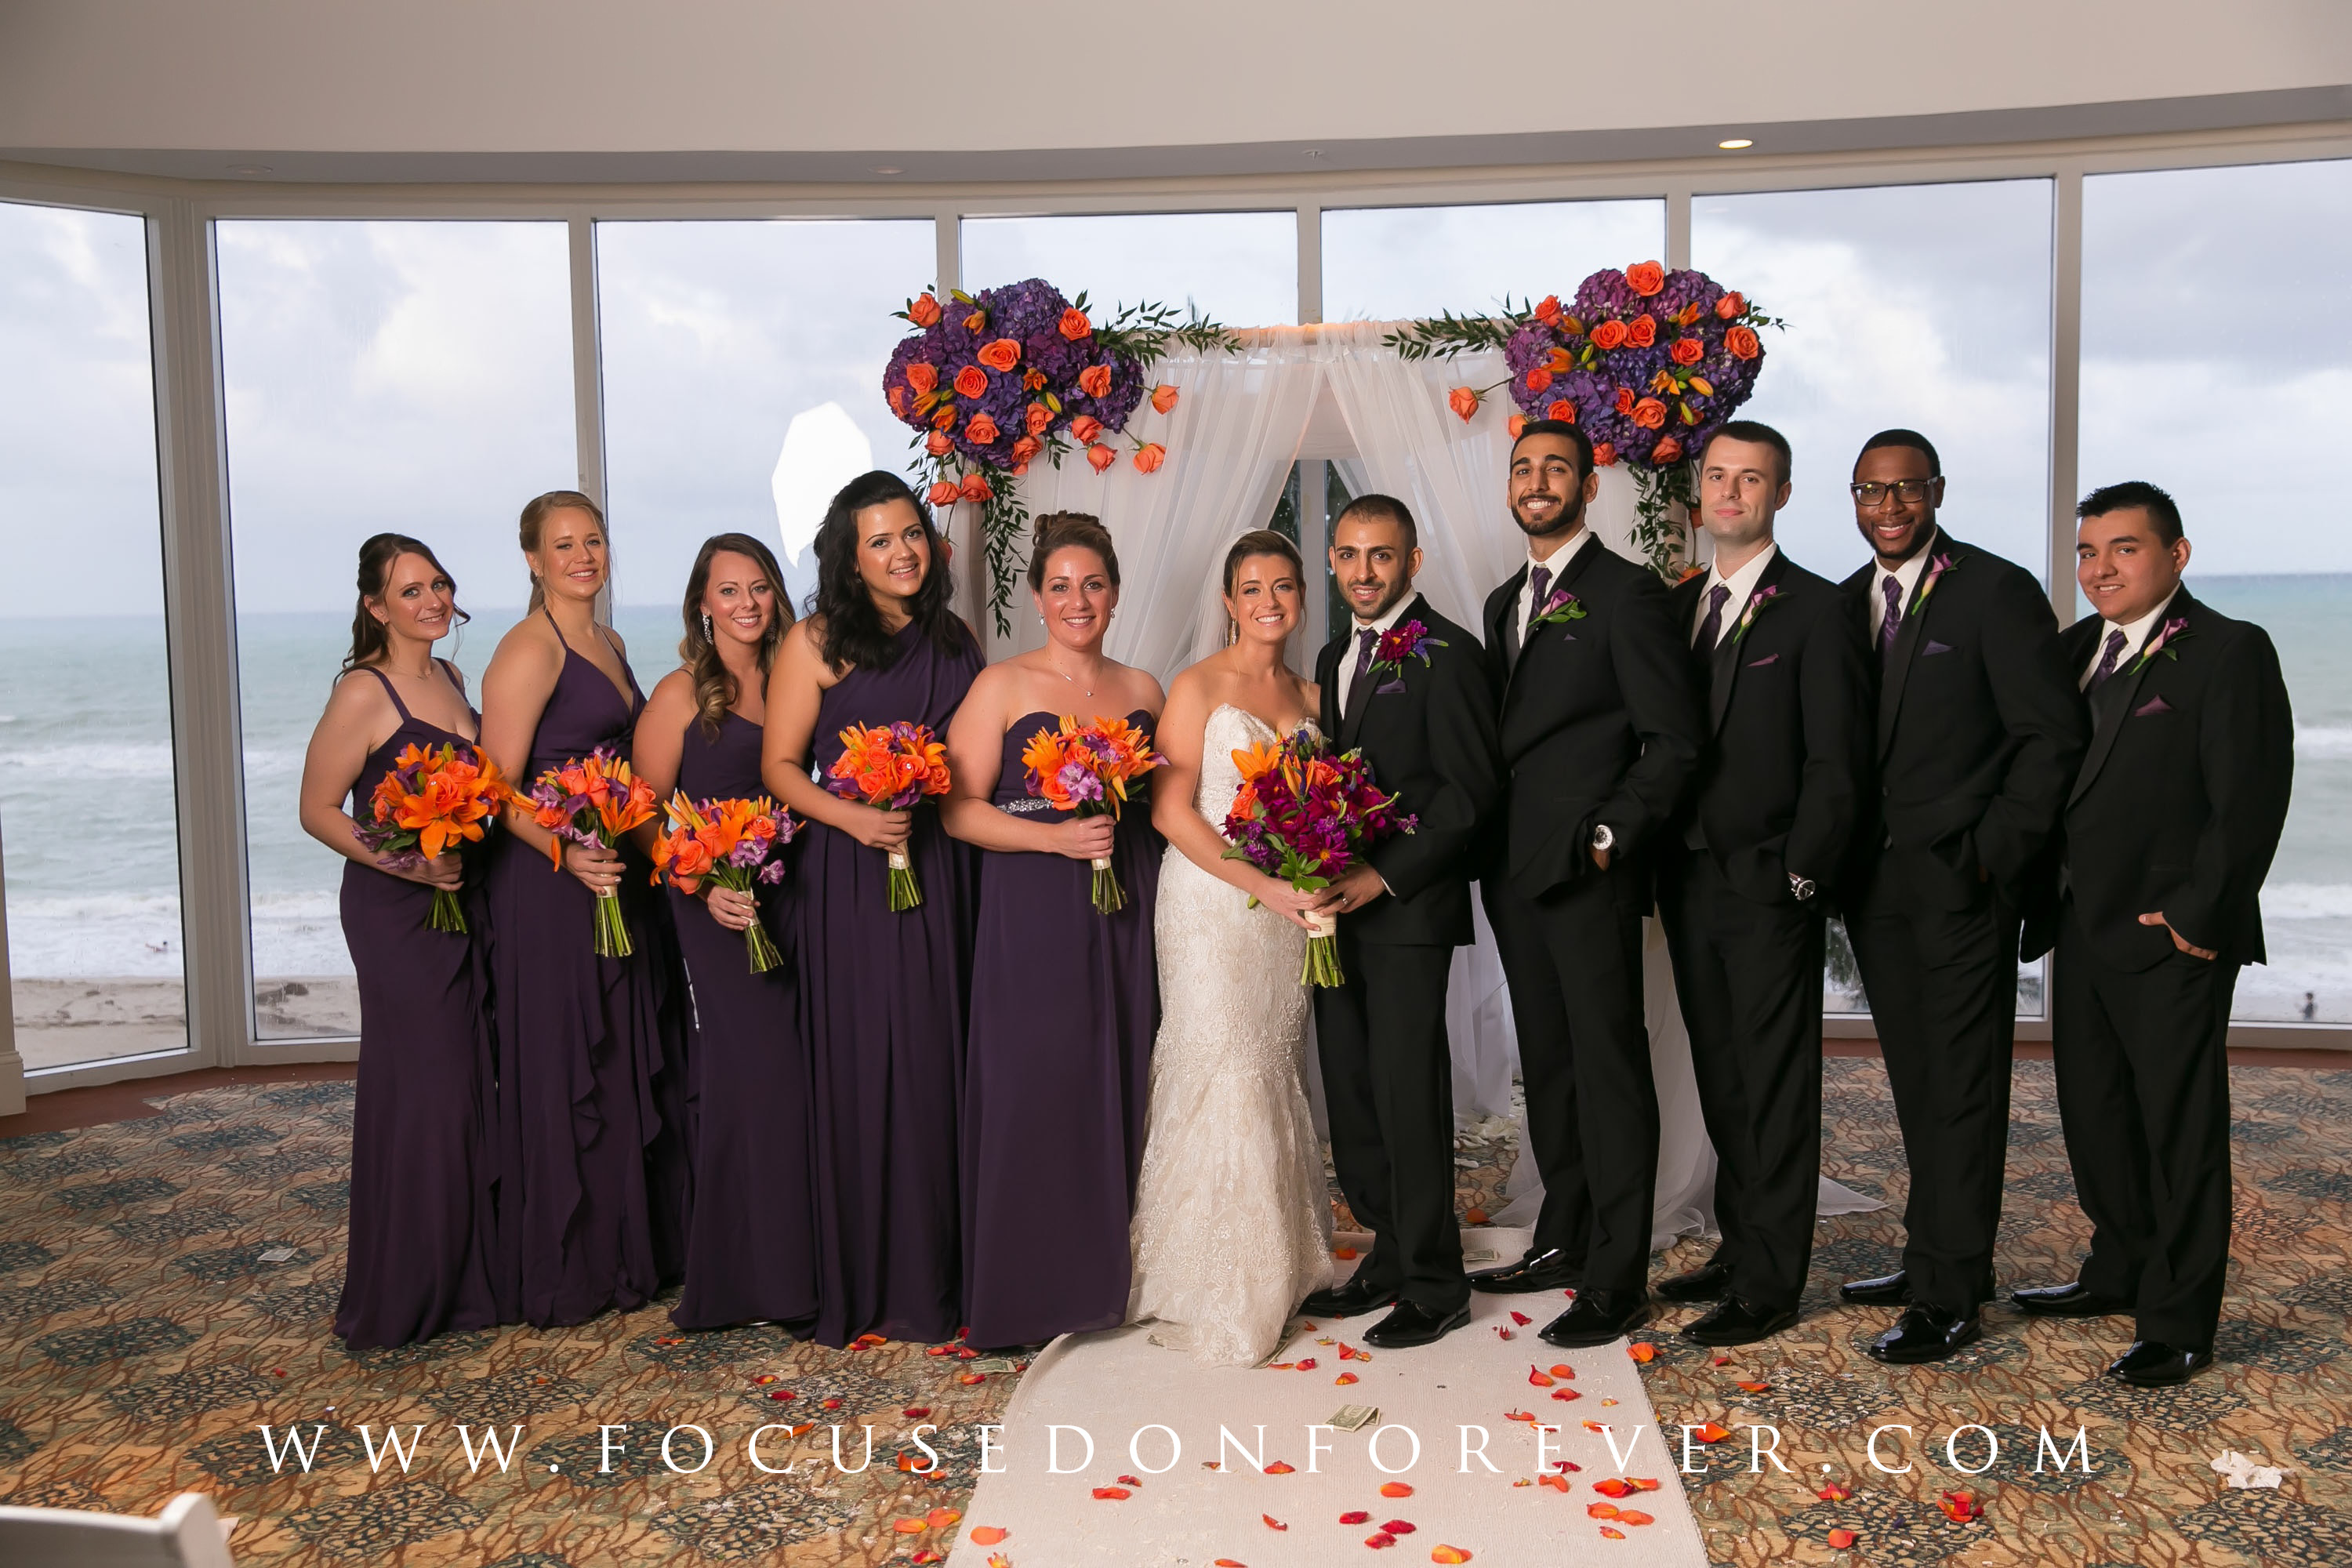 Kara and Ehsan Married at the DoubleTree Miami Beach